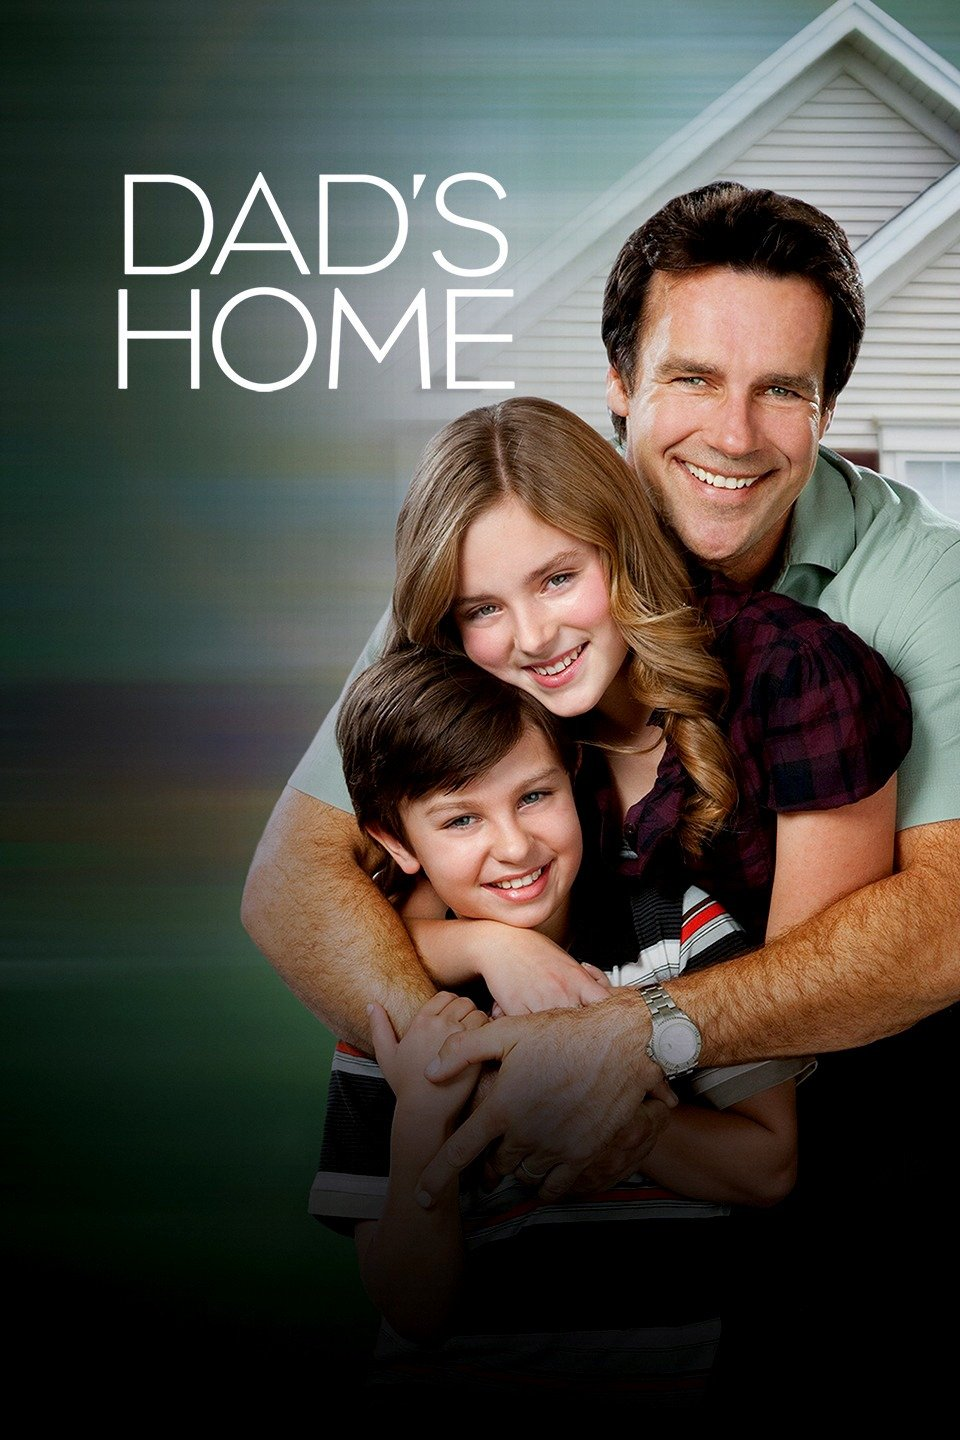 Dad's Home (2010)